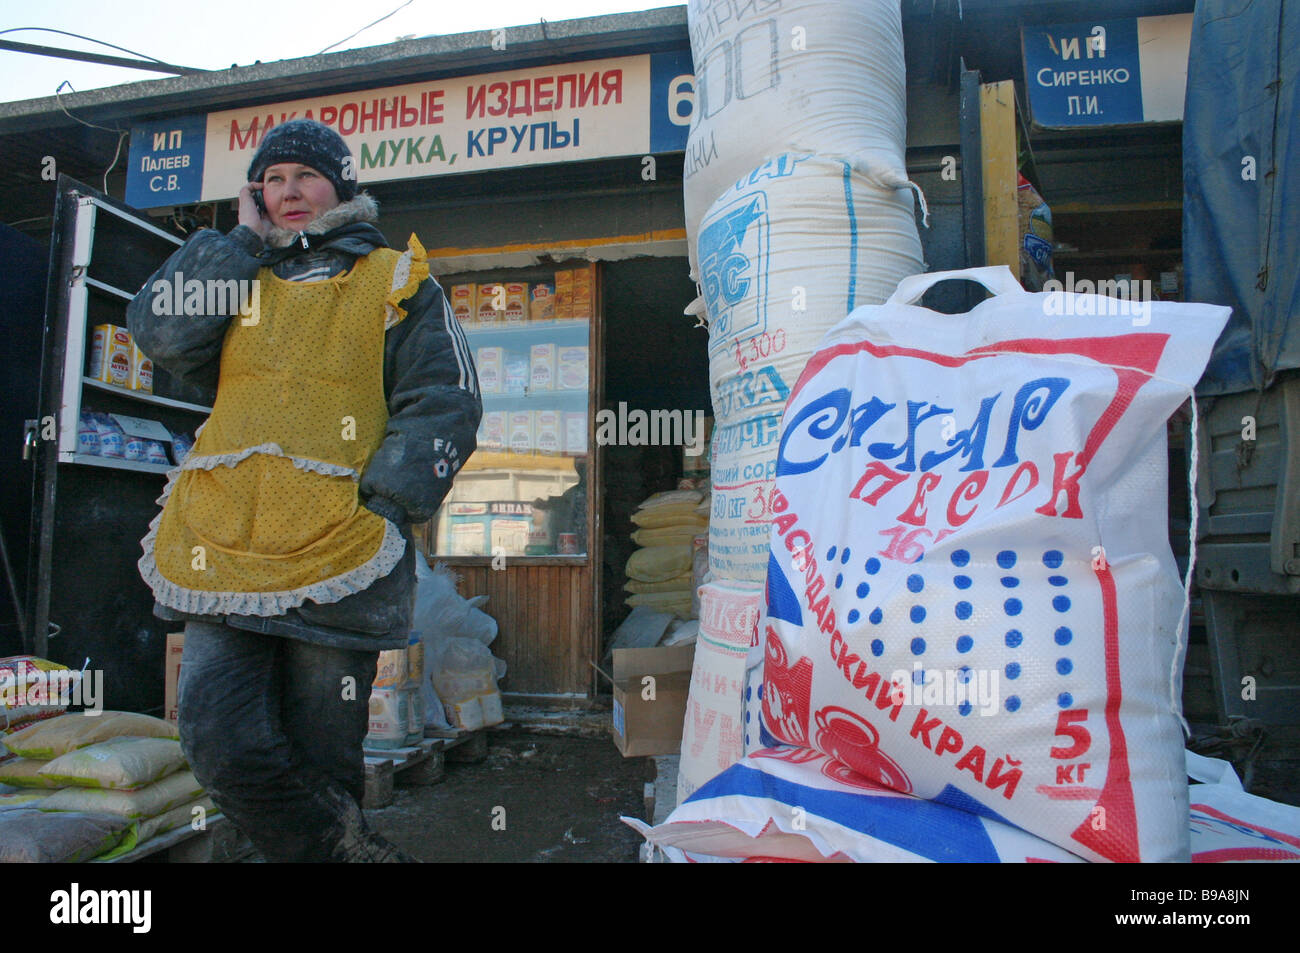 Sugar prices have doubled in the food markets of Chelyabinsk industrial center in the Urals A plastic bag now costs - Stock Image